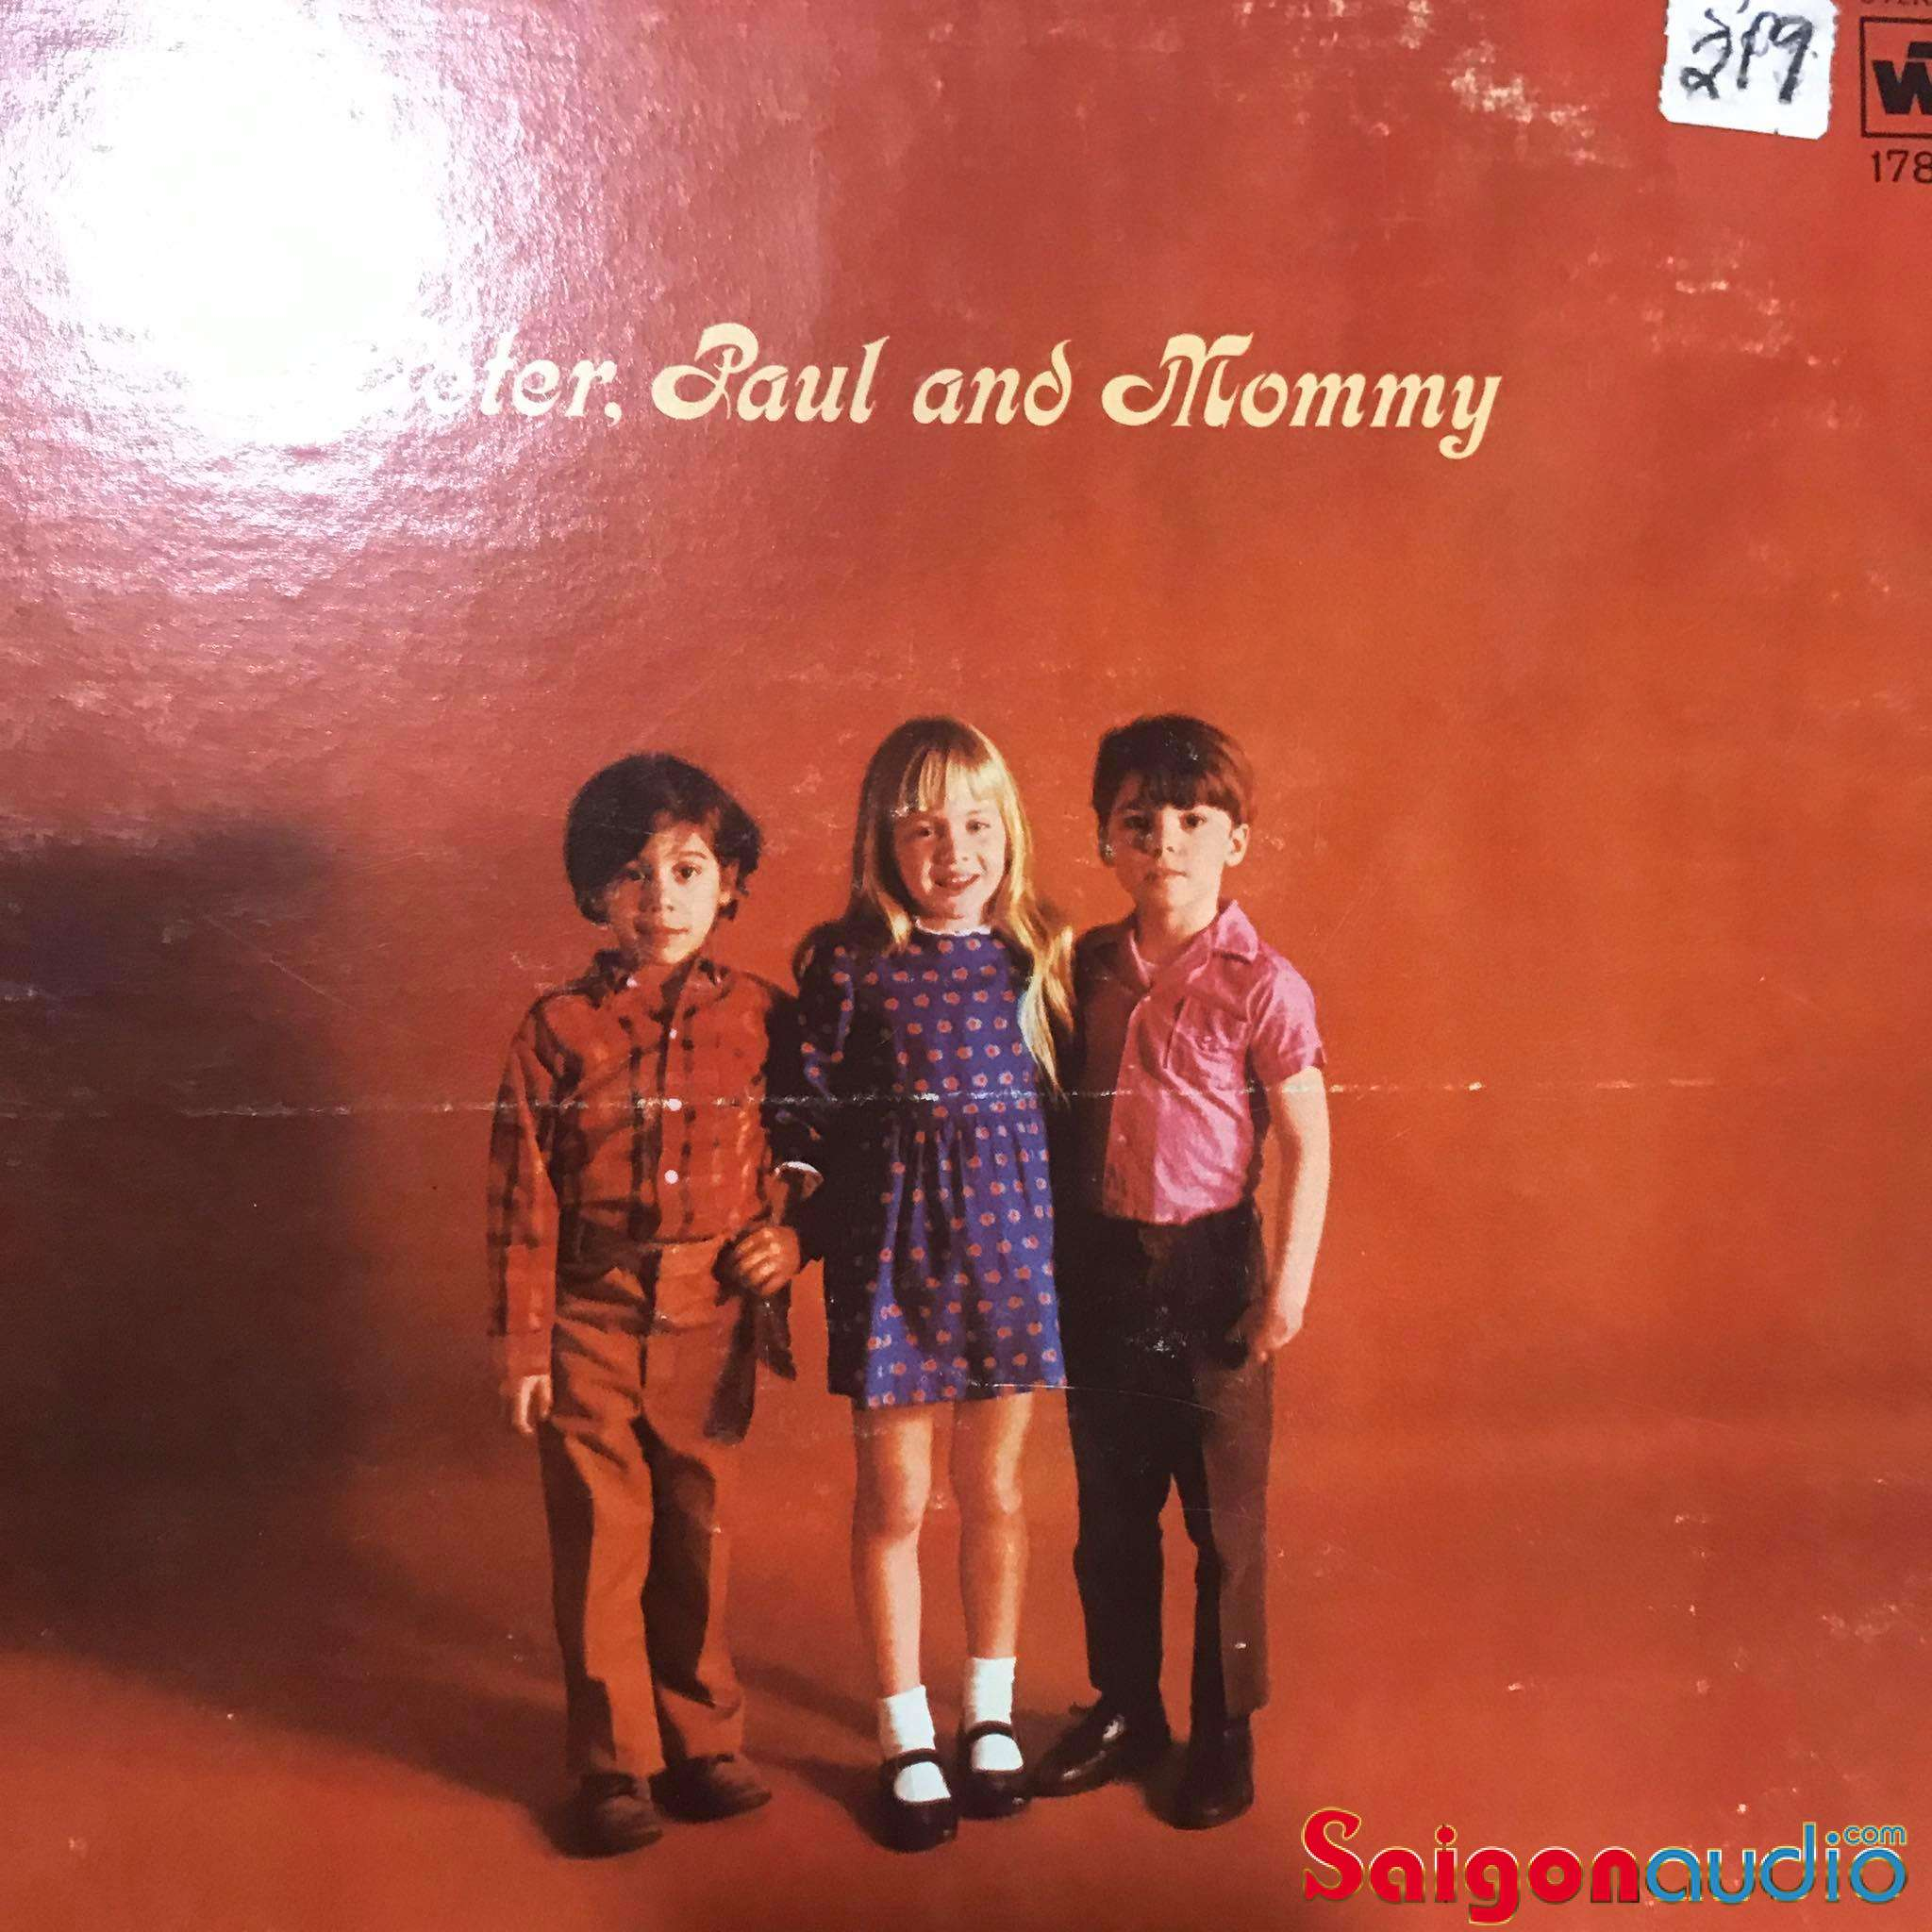 Đĩa than LP Peter, Paul And Mary - Peter, Paul And Mommy (1969)